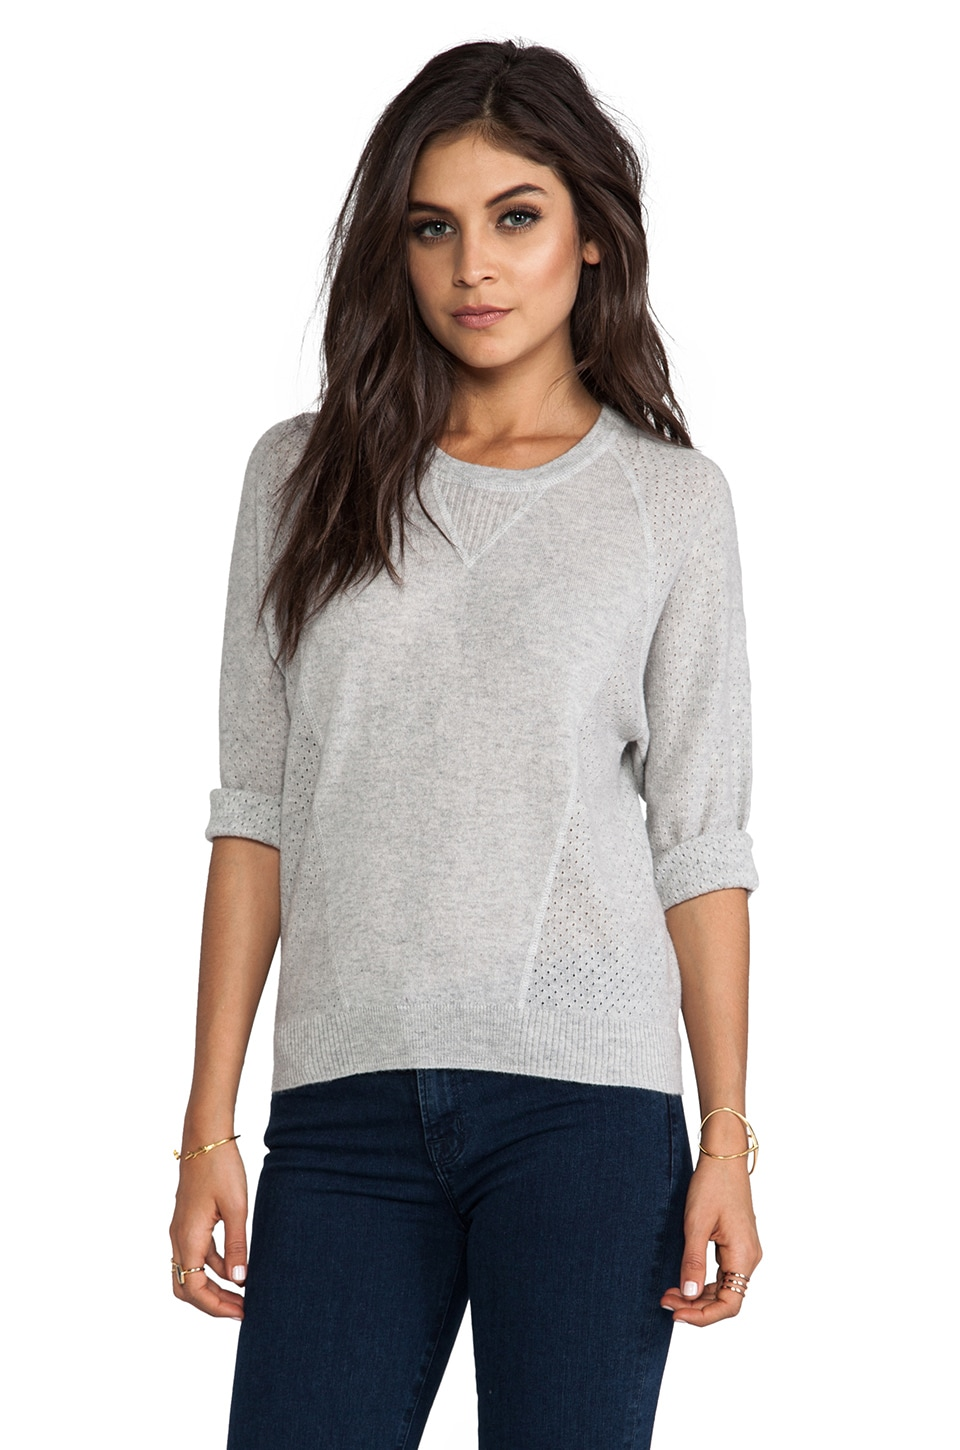 Autumn Cashmere Mesh Detail Sweatshirt in Fog